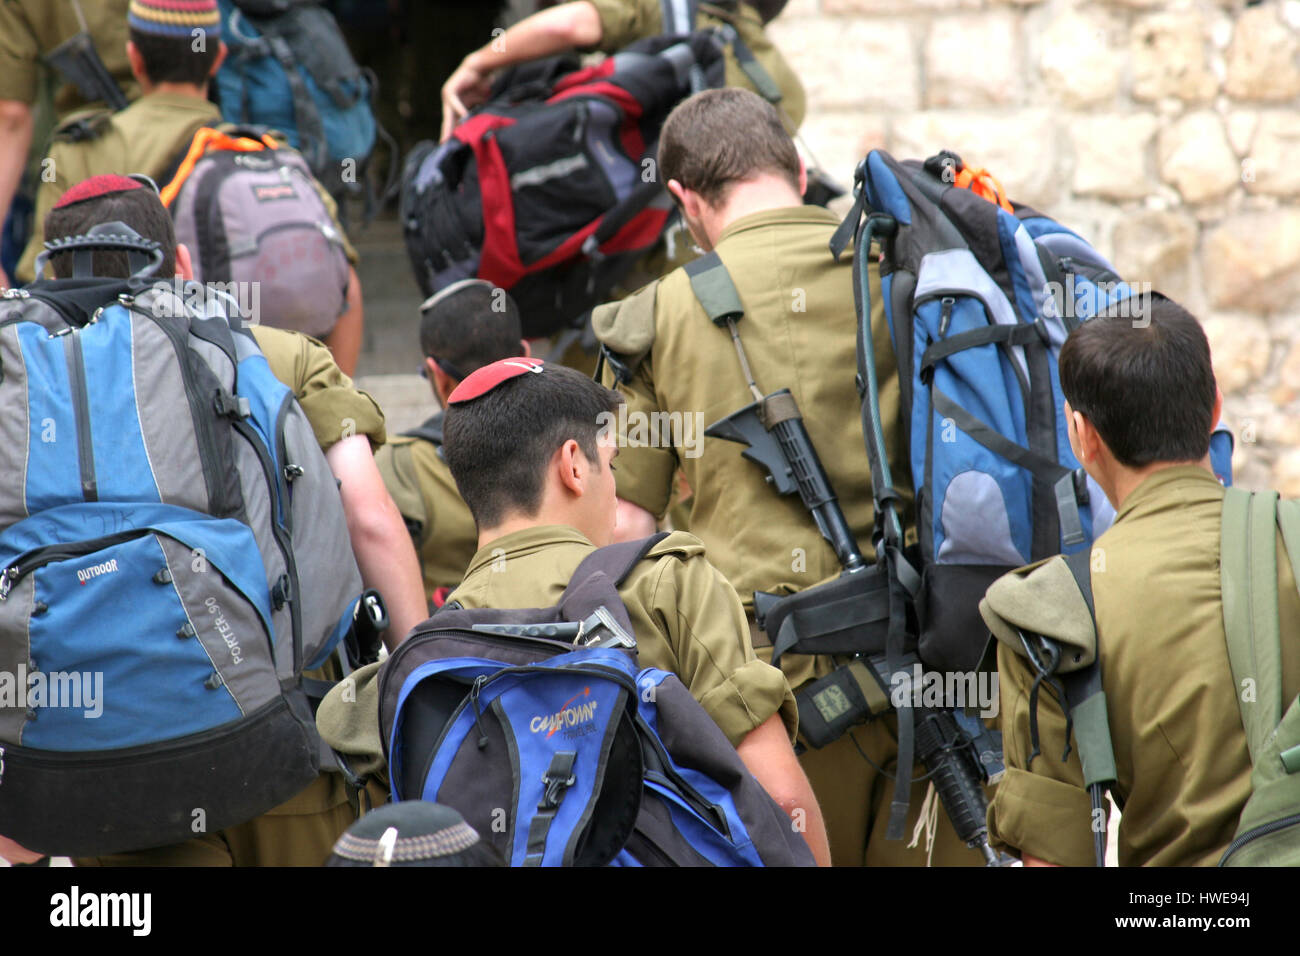 Members of the Israeli Border Police in the Old City of Jerusalem - Stock Image